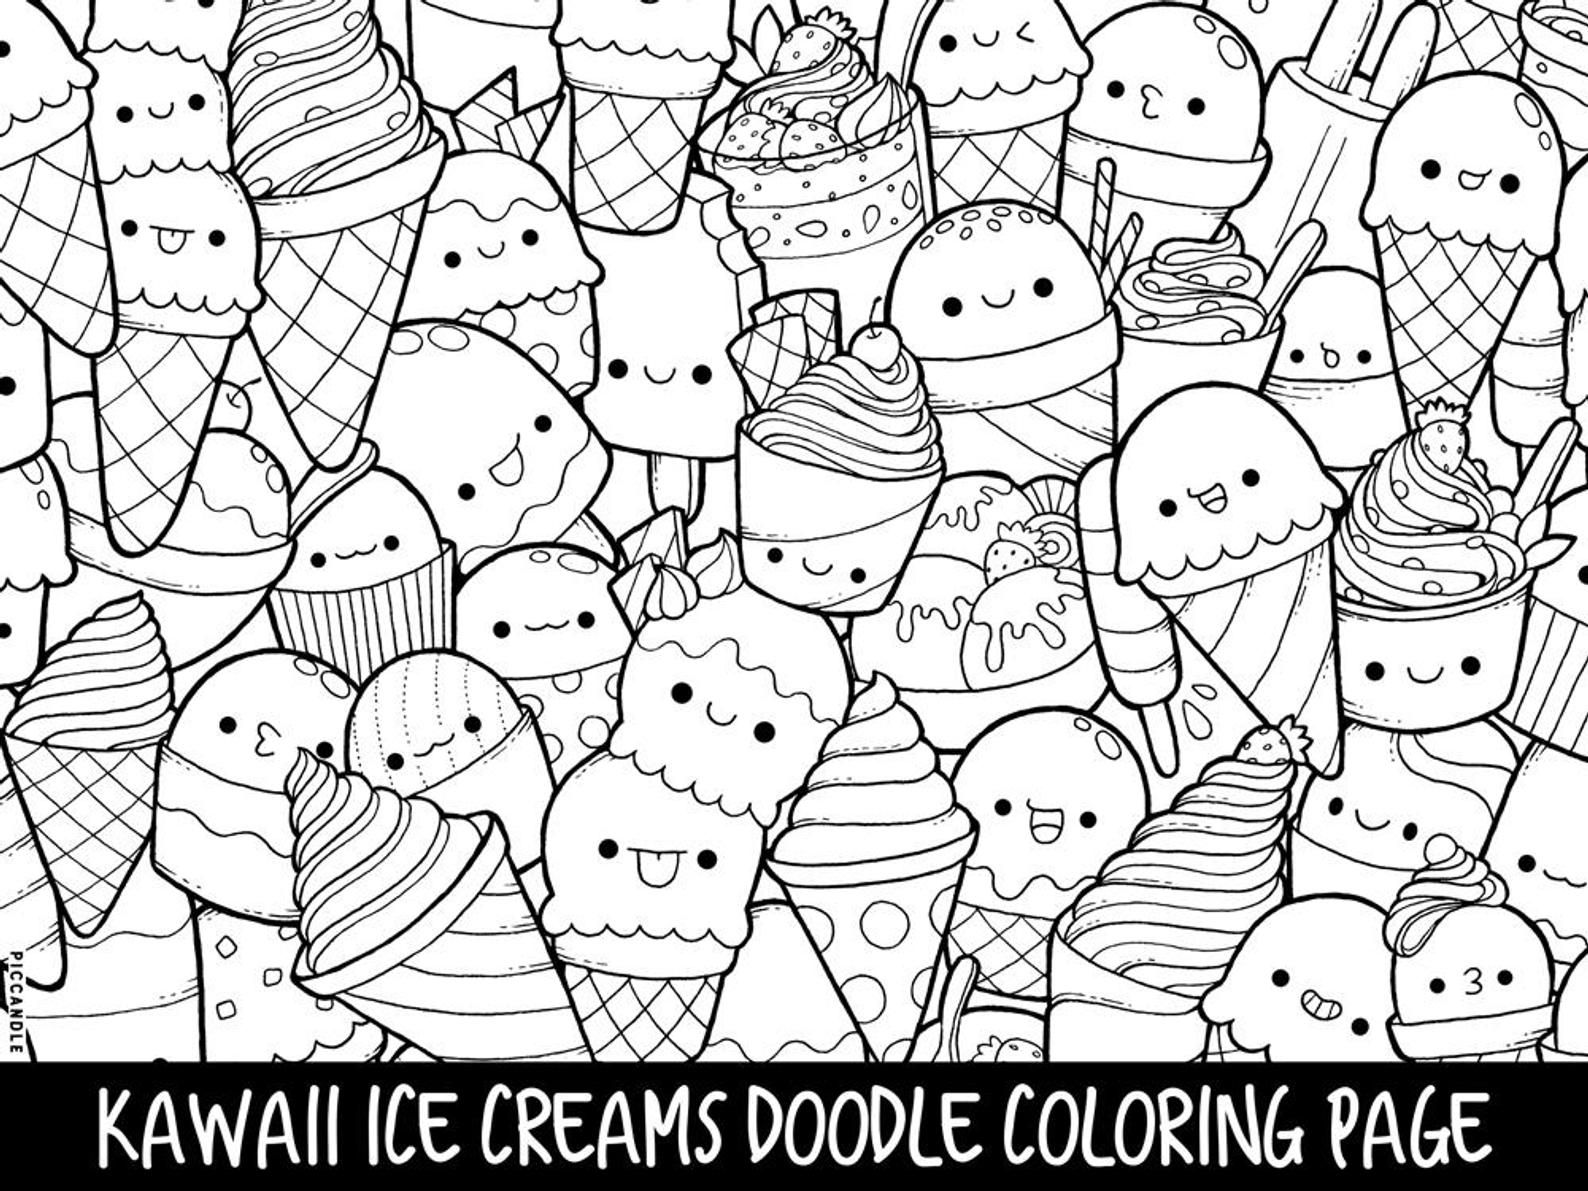 Ice Creams Doodle Coloring Page Printable Cute Kawaii Coloring Page For Kids And Adults Doodle Coloring Cute Coloring Pages Mermaid Coloring Pages